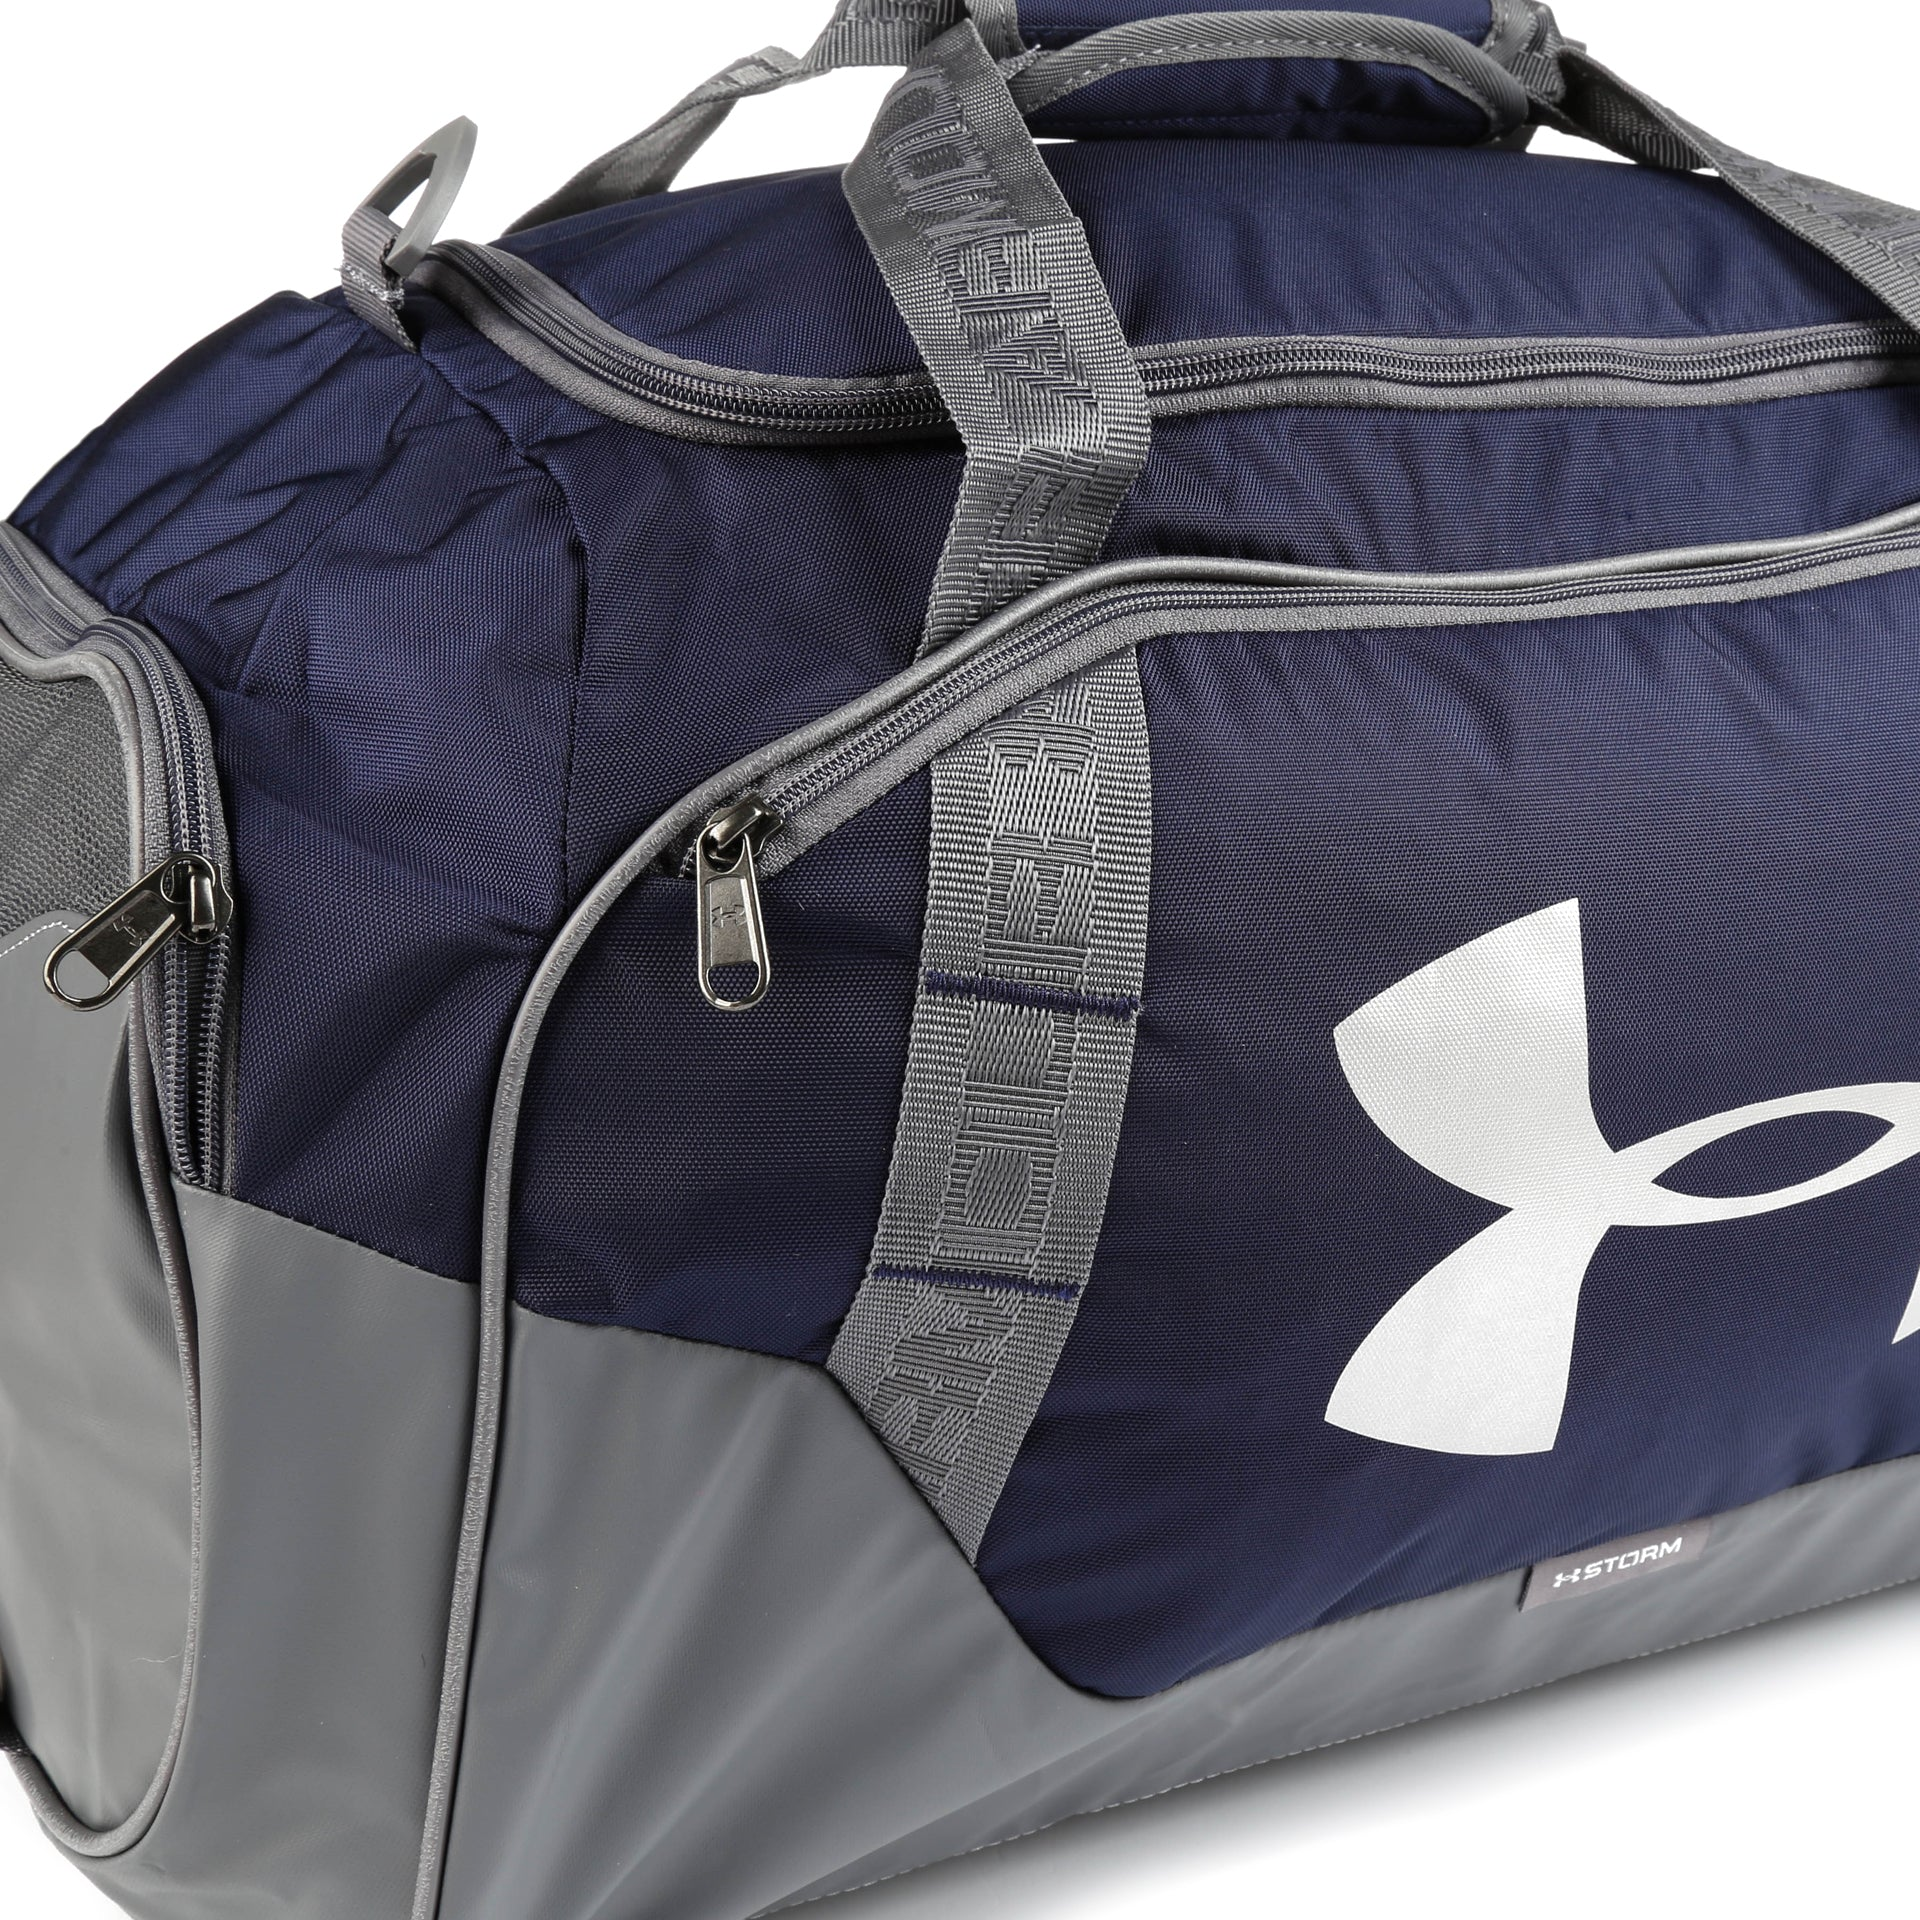 24430bc8fede Under Armour Undeniable 3.0 Medium Duffle bag - Midnight Navy   Graphite